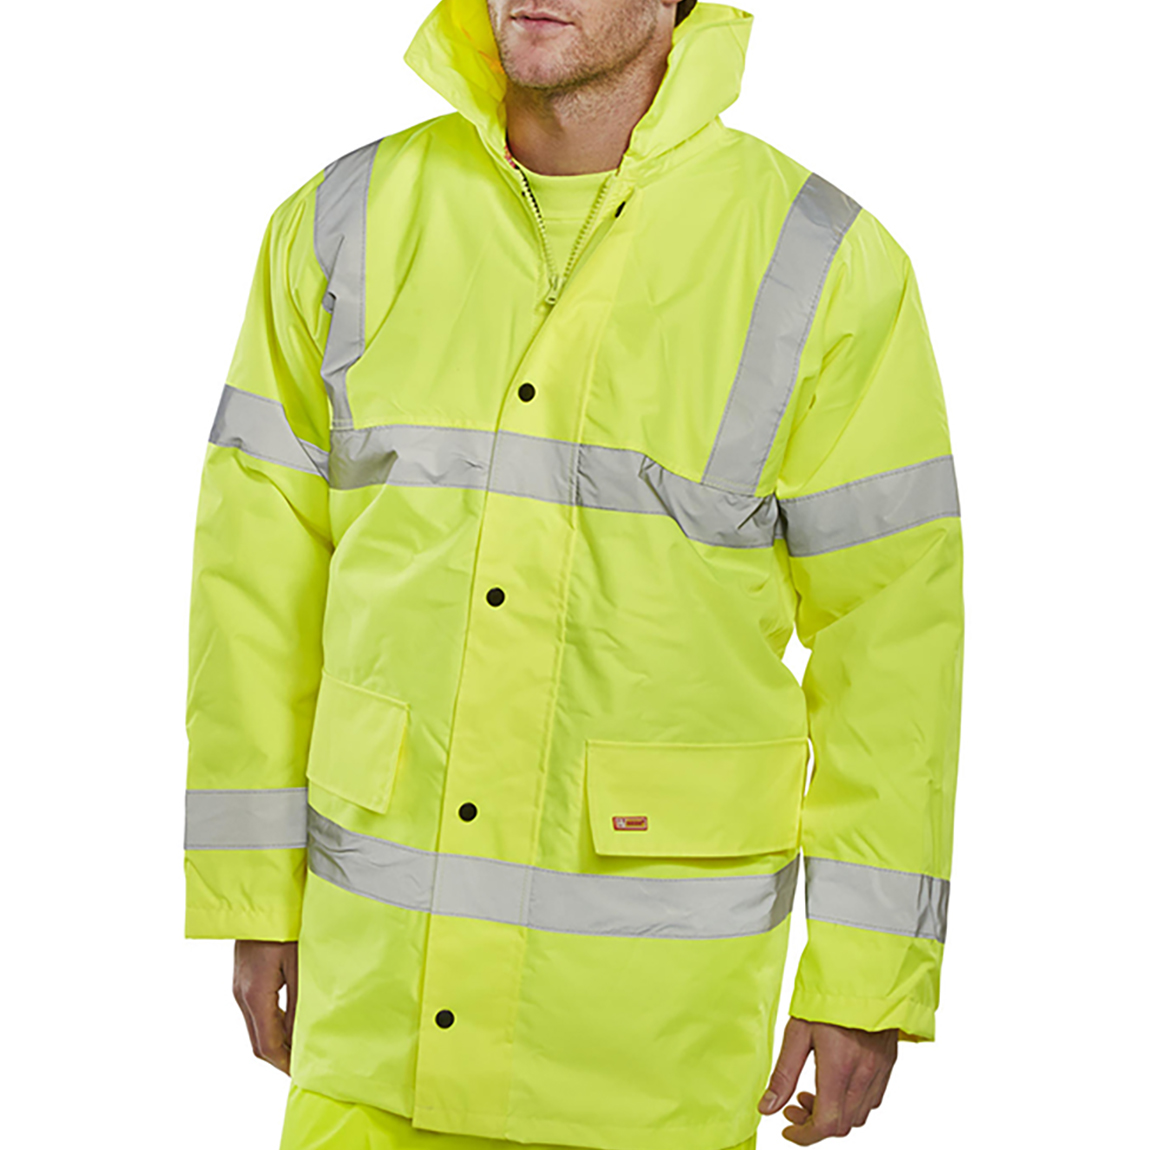 High Visibility BSeen High Visibility Constructor Jacket Large Saturn Yellow Ref CTJENGSYL *Approx 3 Day Leadtime*